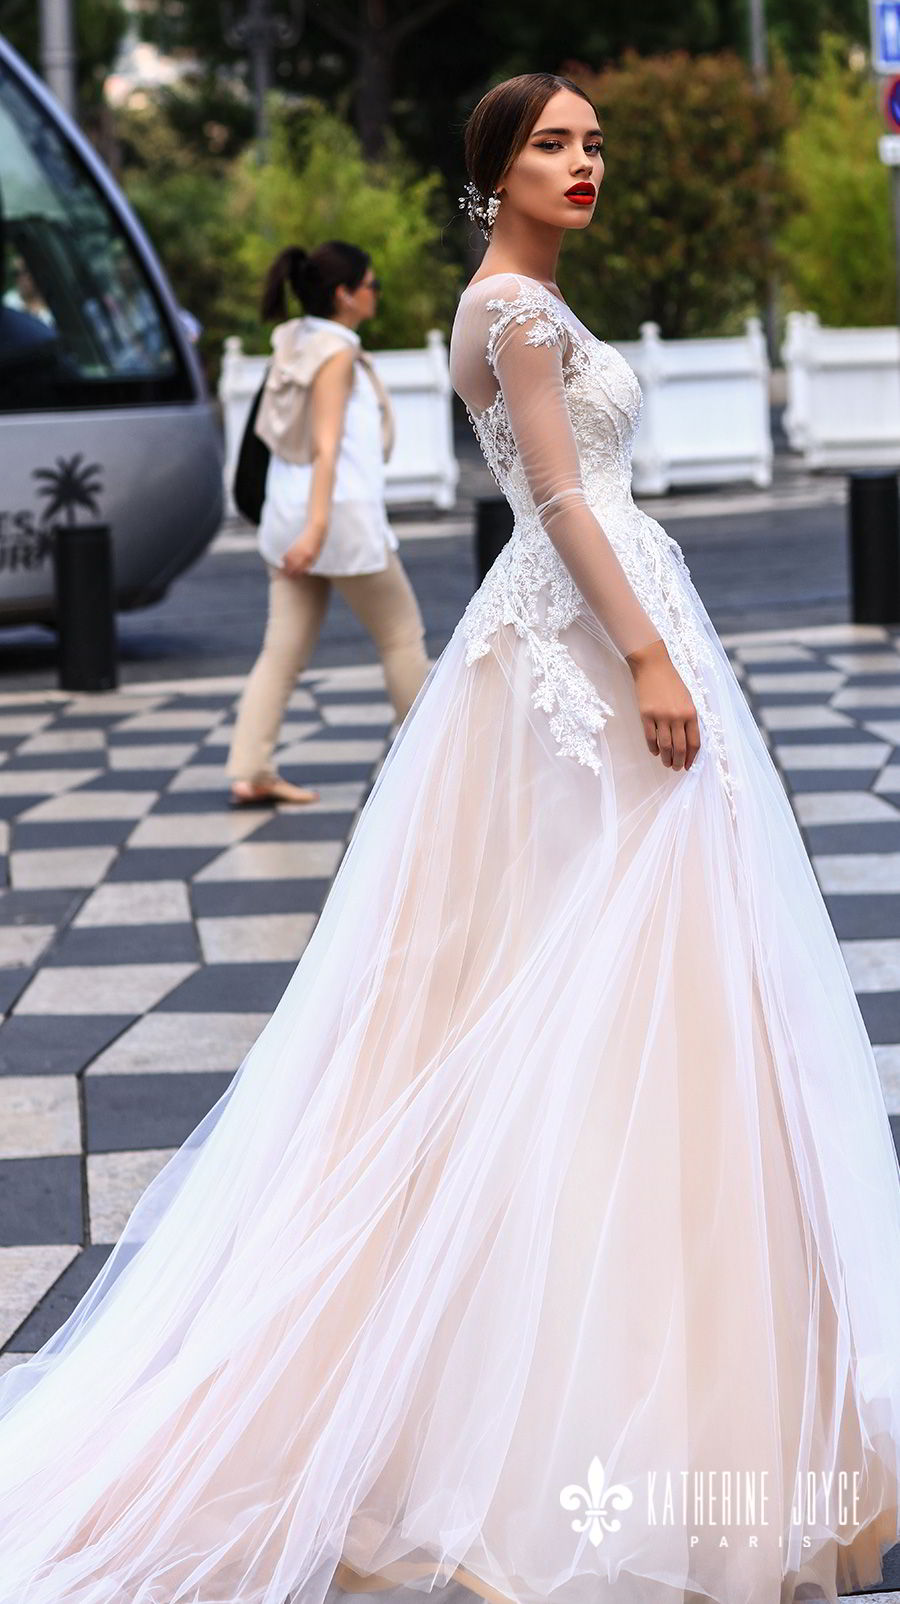 katherine joyce 2018 bridal long sleeves sheer jewel neck sweetheart neckline heavily embellished bodice tulle skirt romantic blush a  line wedding dress sheer back chapel train (dolores) sdv